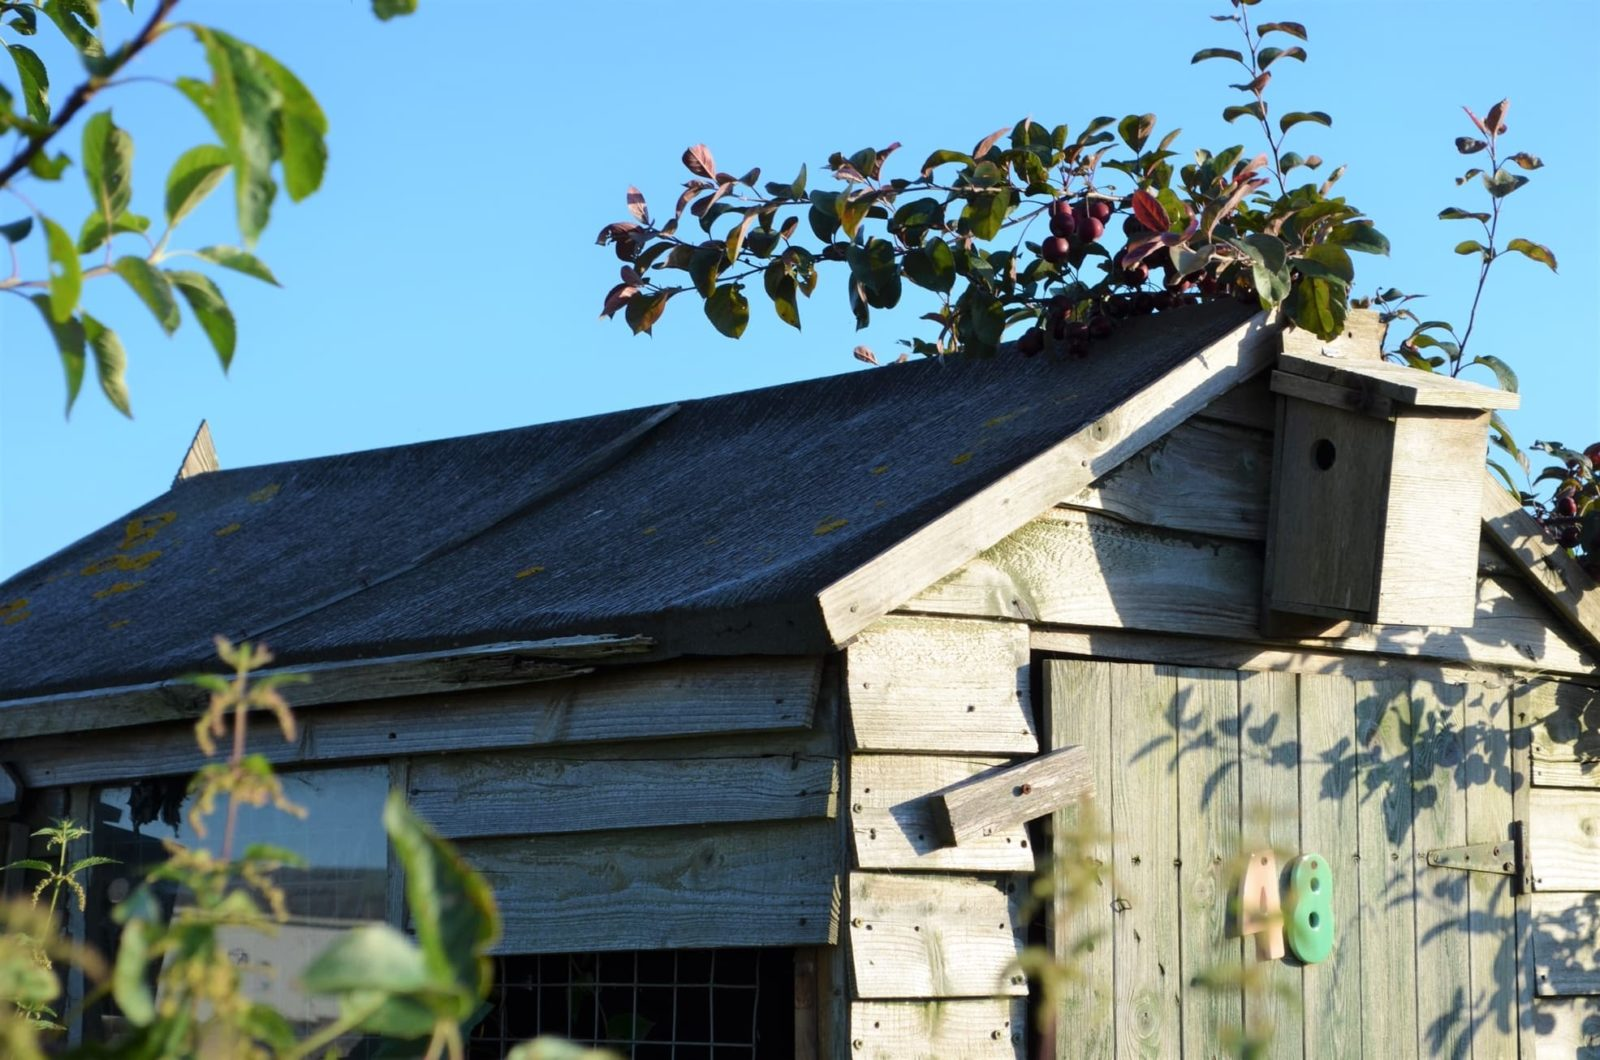 an old shed with a felt roof